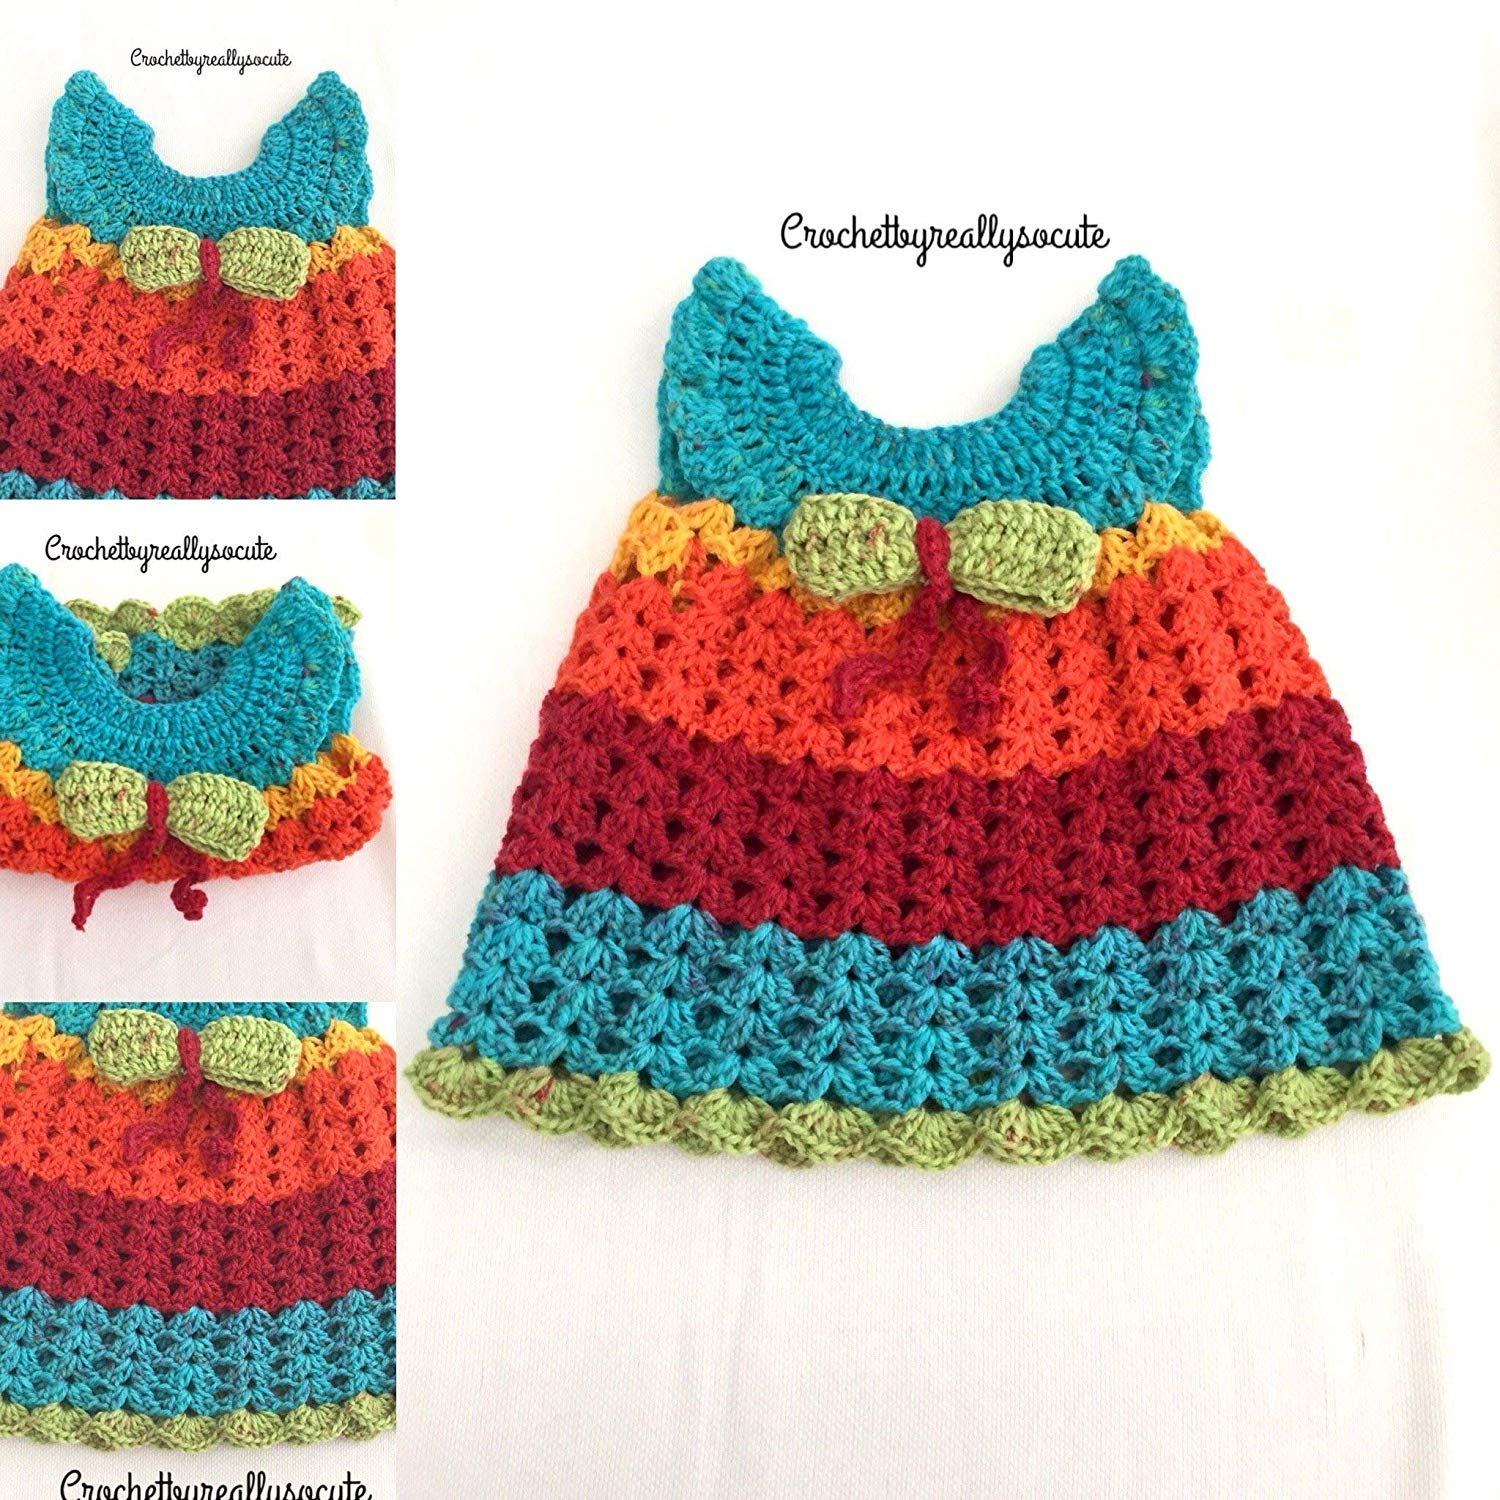 59b94b81c2acf Cheap New Baby Dress, find New Baby Dress deals on line at Alibaba.com